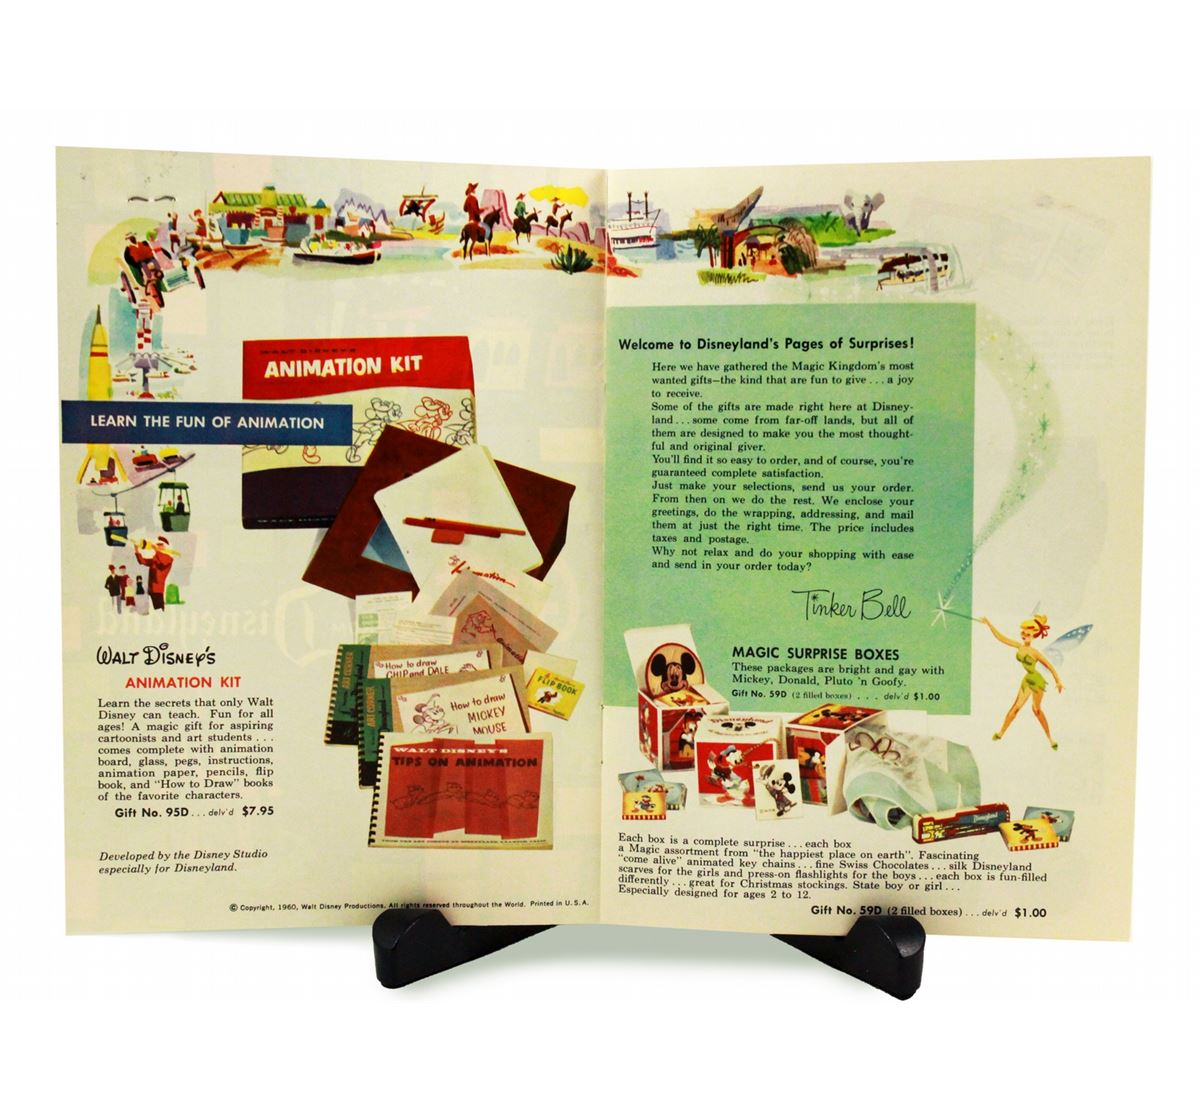 image 4 gifts from disneyland mail order catalog - Christmas Mail Order Catalogs